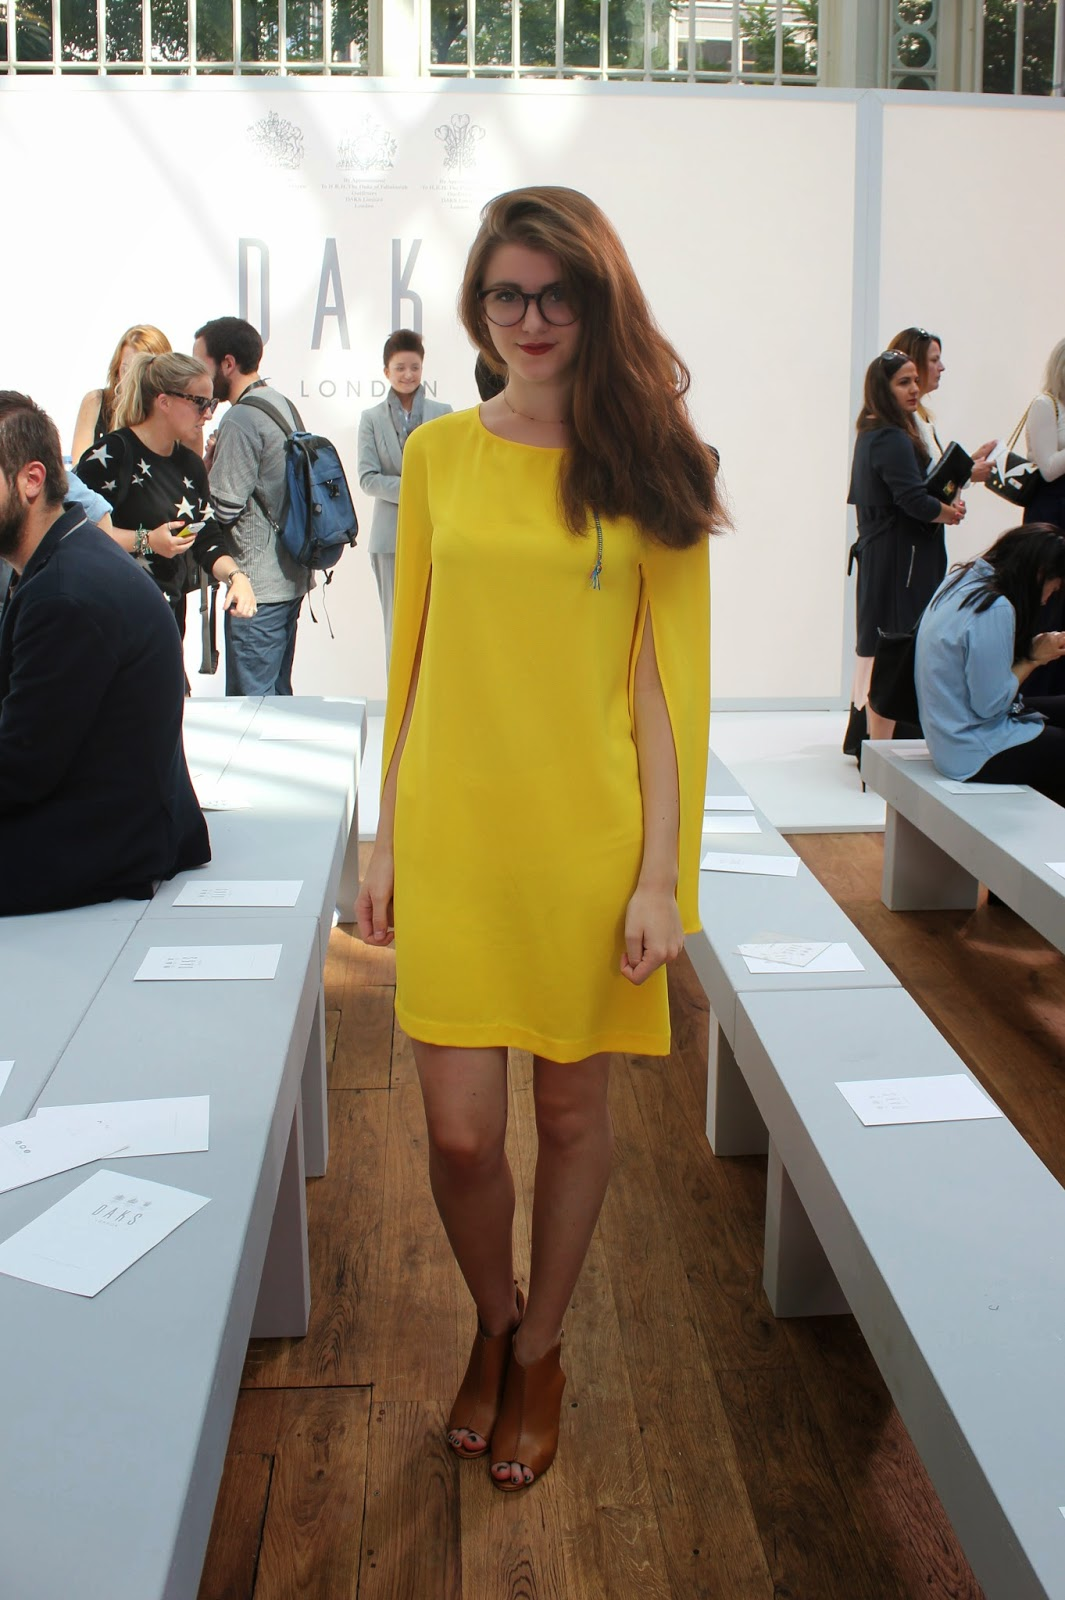 london-fashion-week-2014-lfw-DAKS-show-catwalk-spring-summer-2015-clothes-fashion-royal-opera-house-dress-girl-OOTD-heels